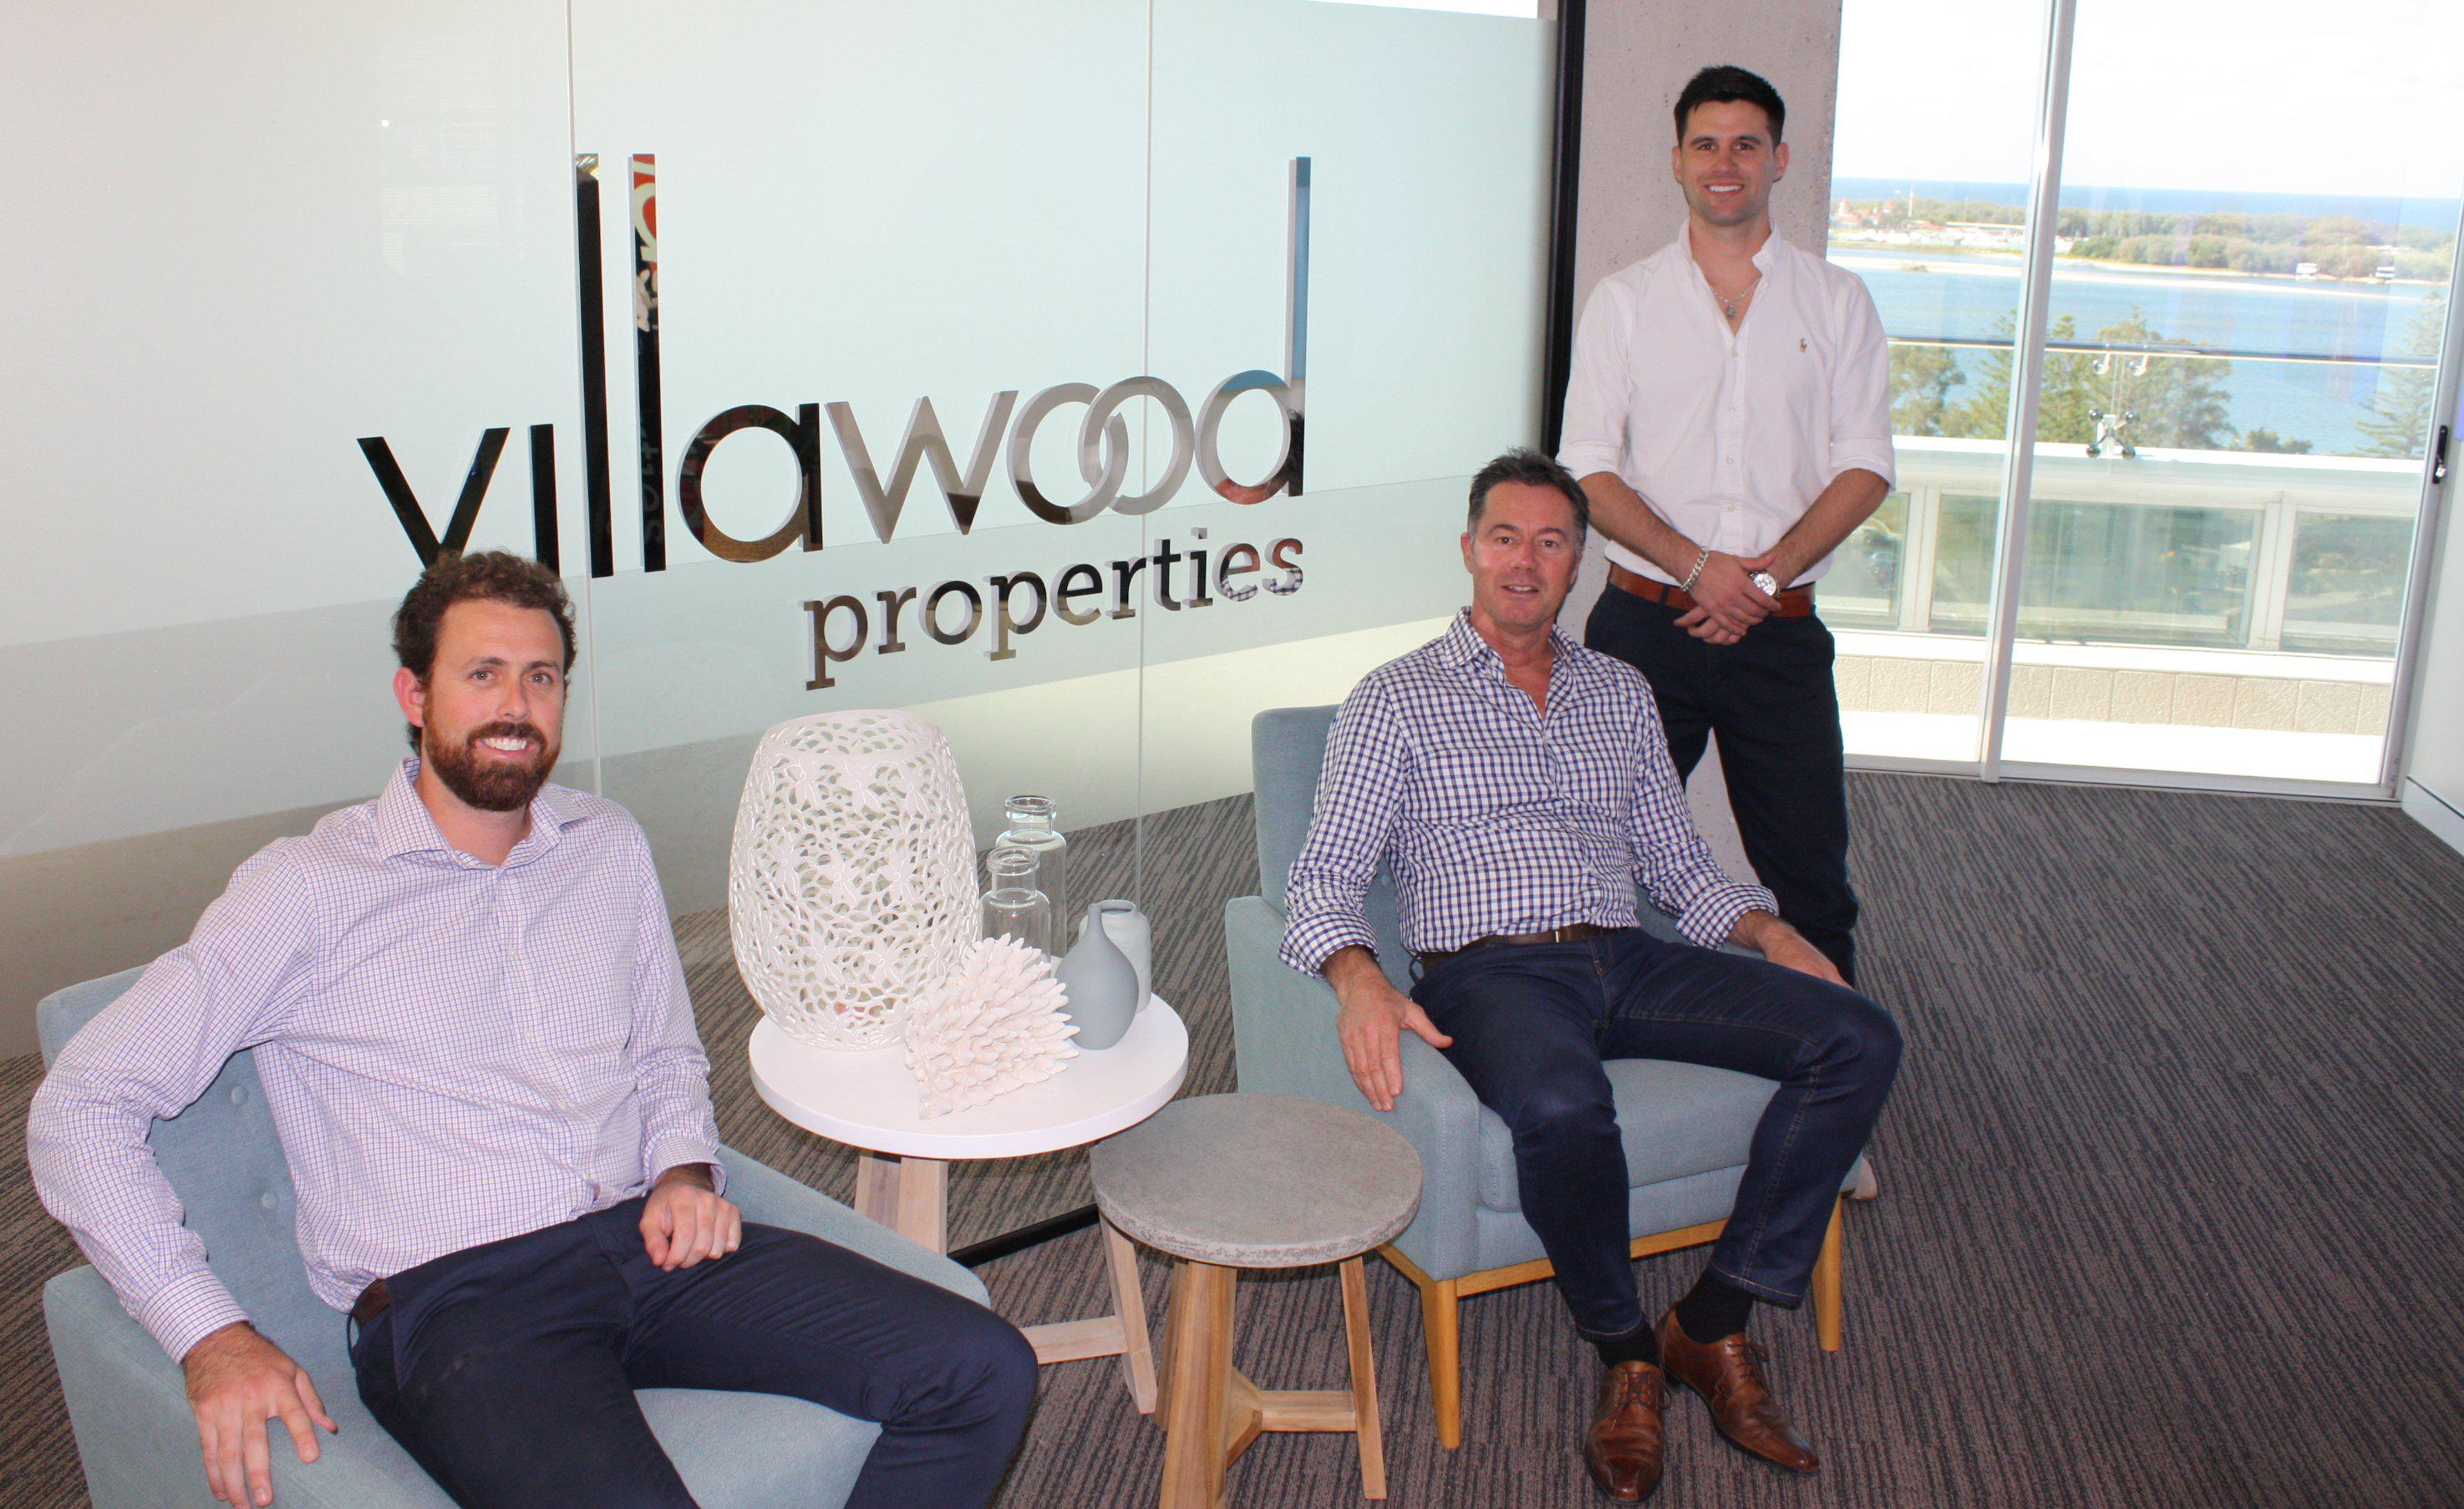 Villawood-Michael-Williams-Tony-Johnson-Christopher-Ciuffetelli-e1430277823948